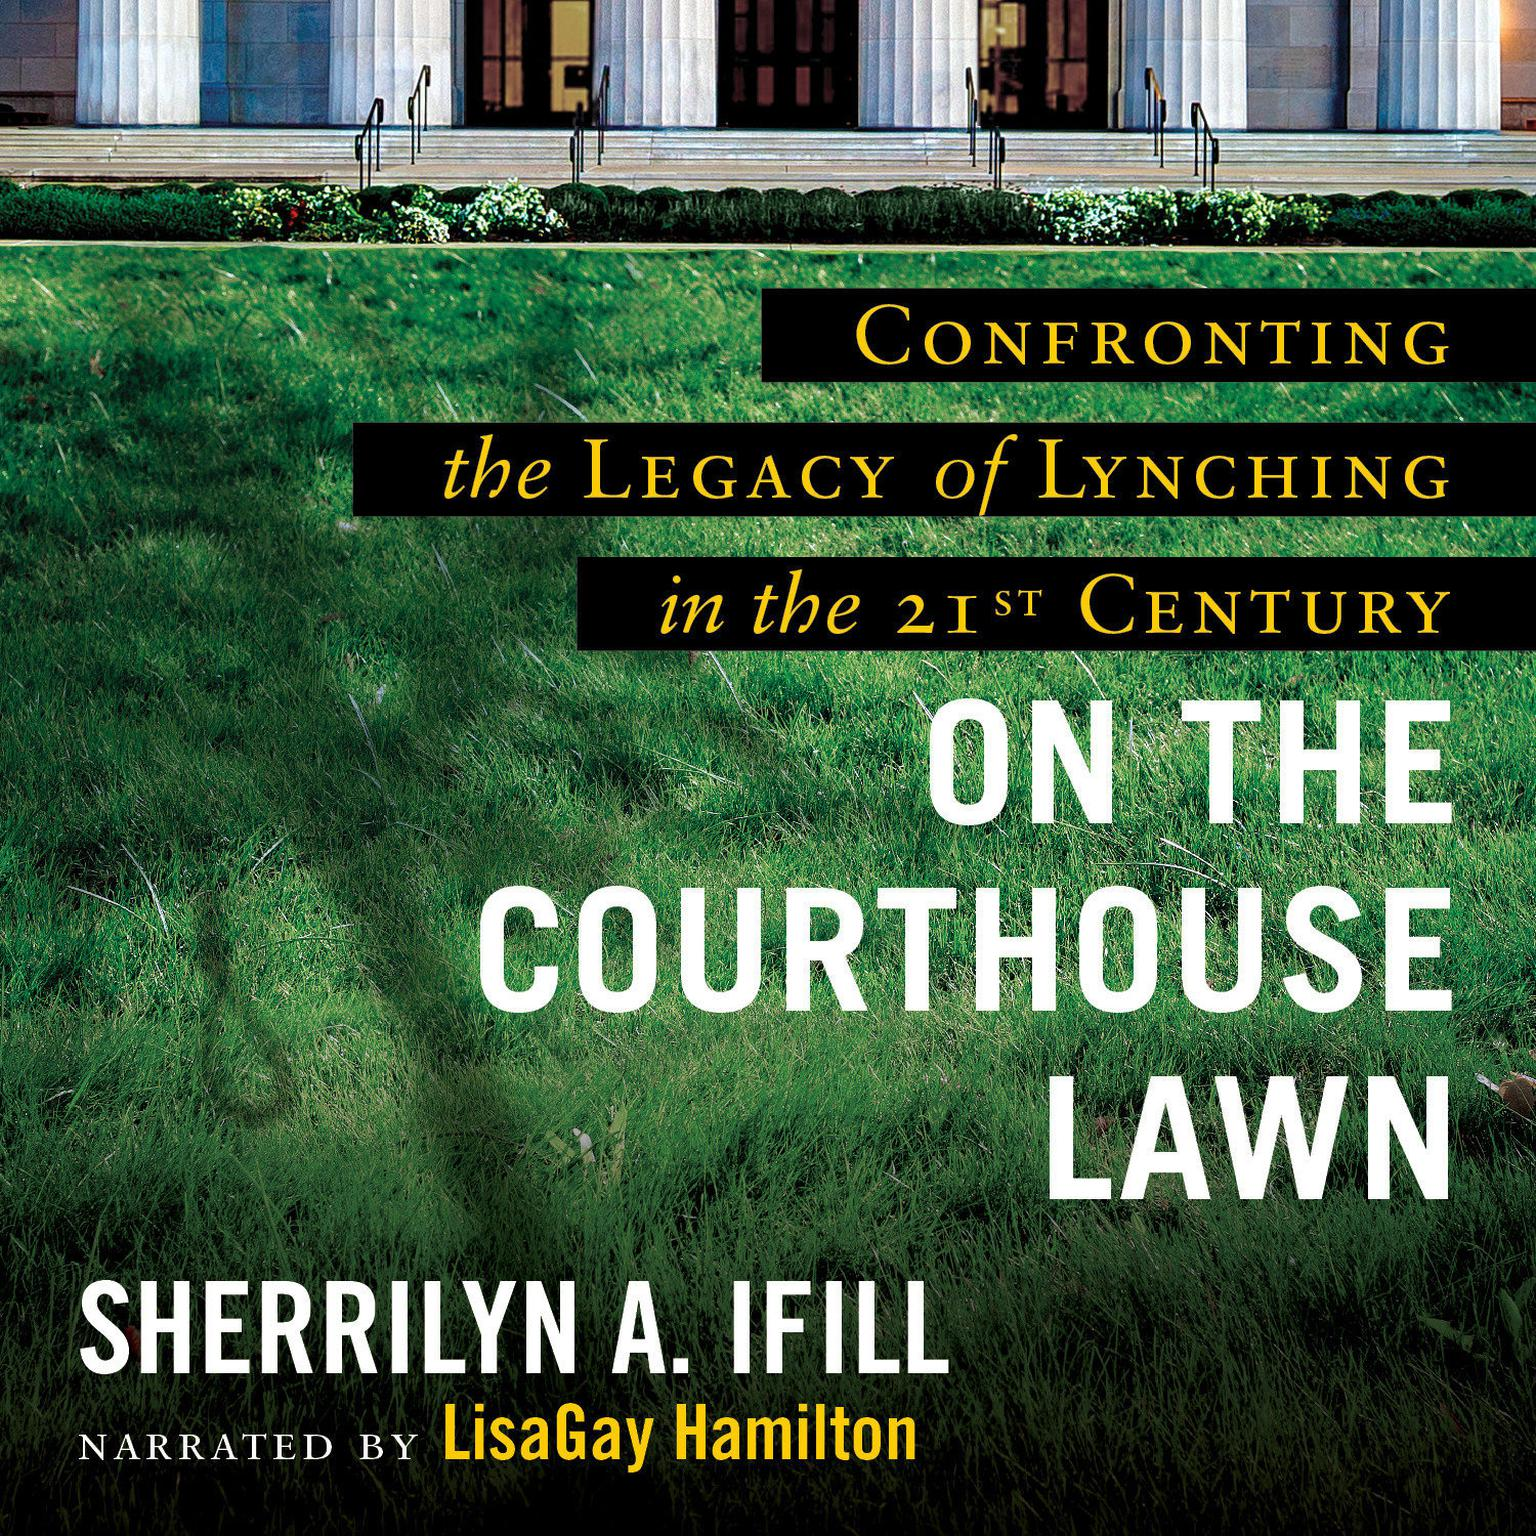 Printable On the Courthouse Lawn, Revised Edition: Confronting the Legacy of Lynching in the Twenty-First Century Audiobook Cover Art